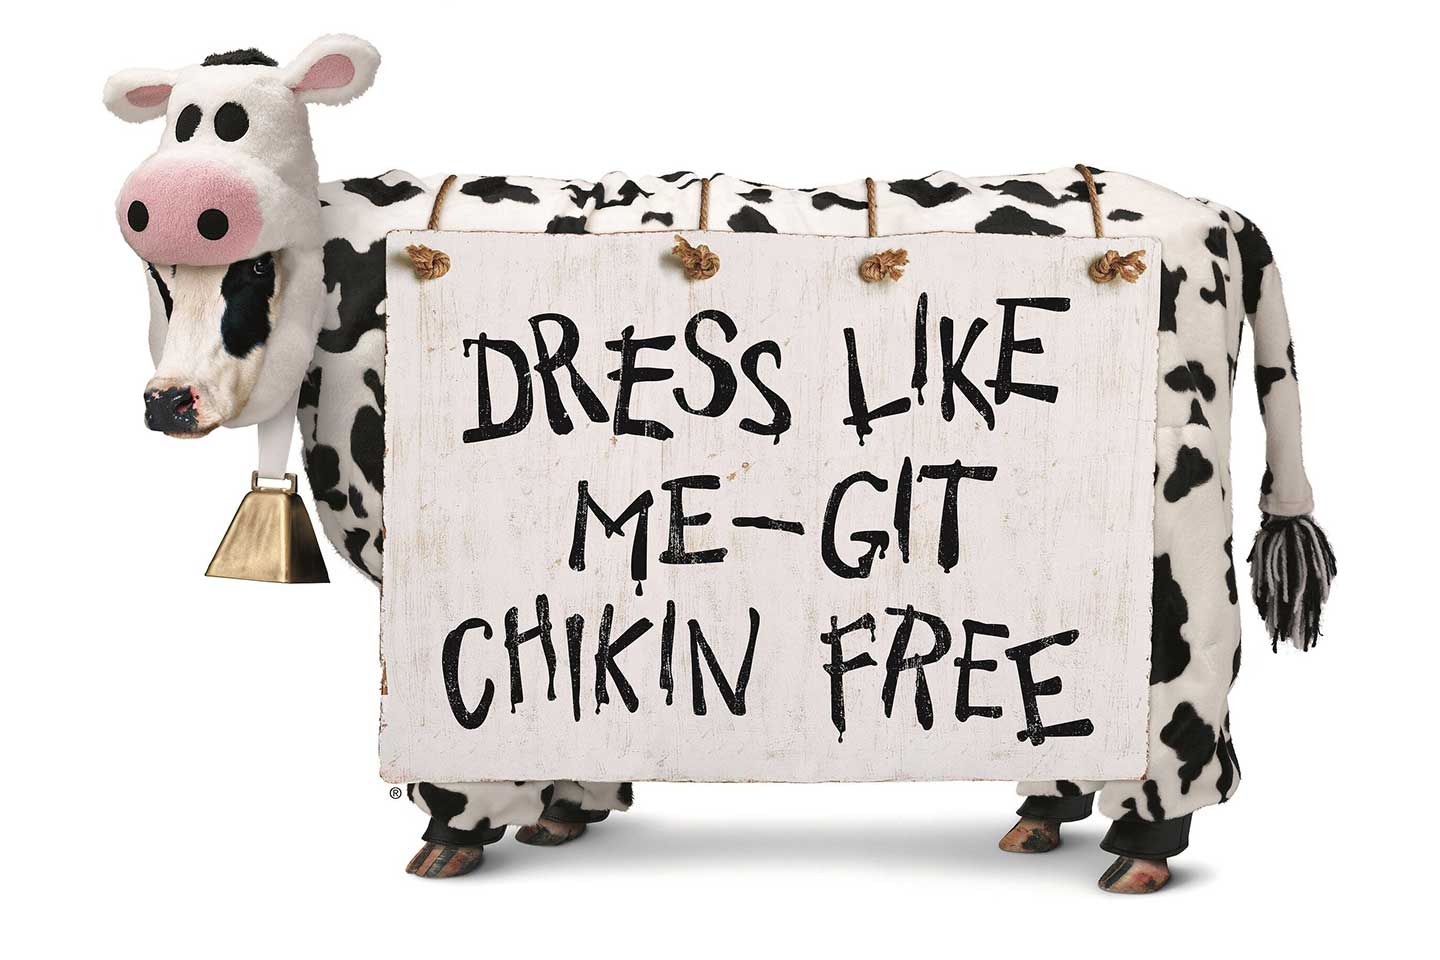 image about Cow Costume Printable referred to as Cow Appreciation Working day Chick-fil-A